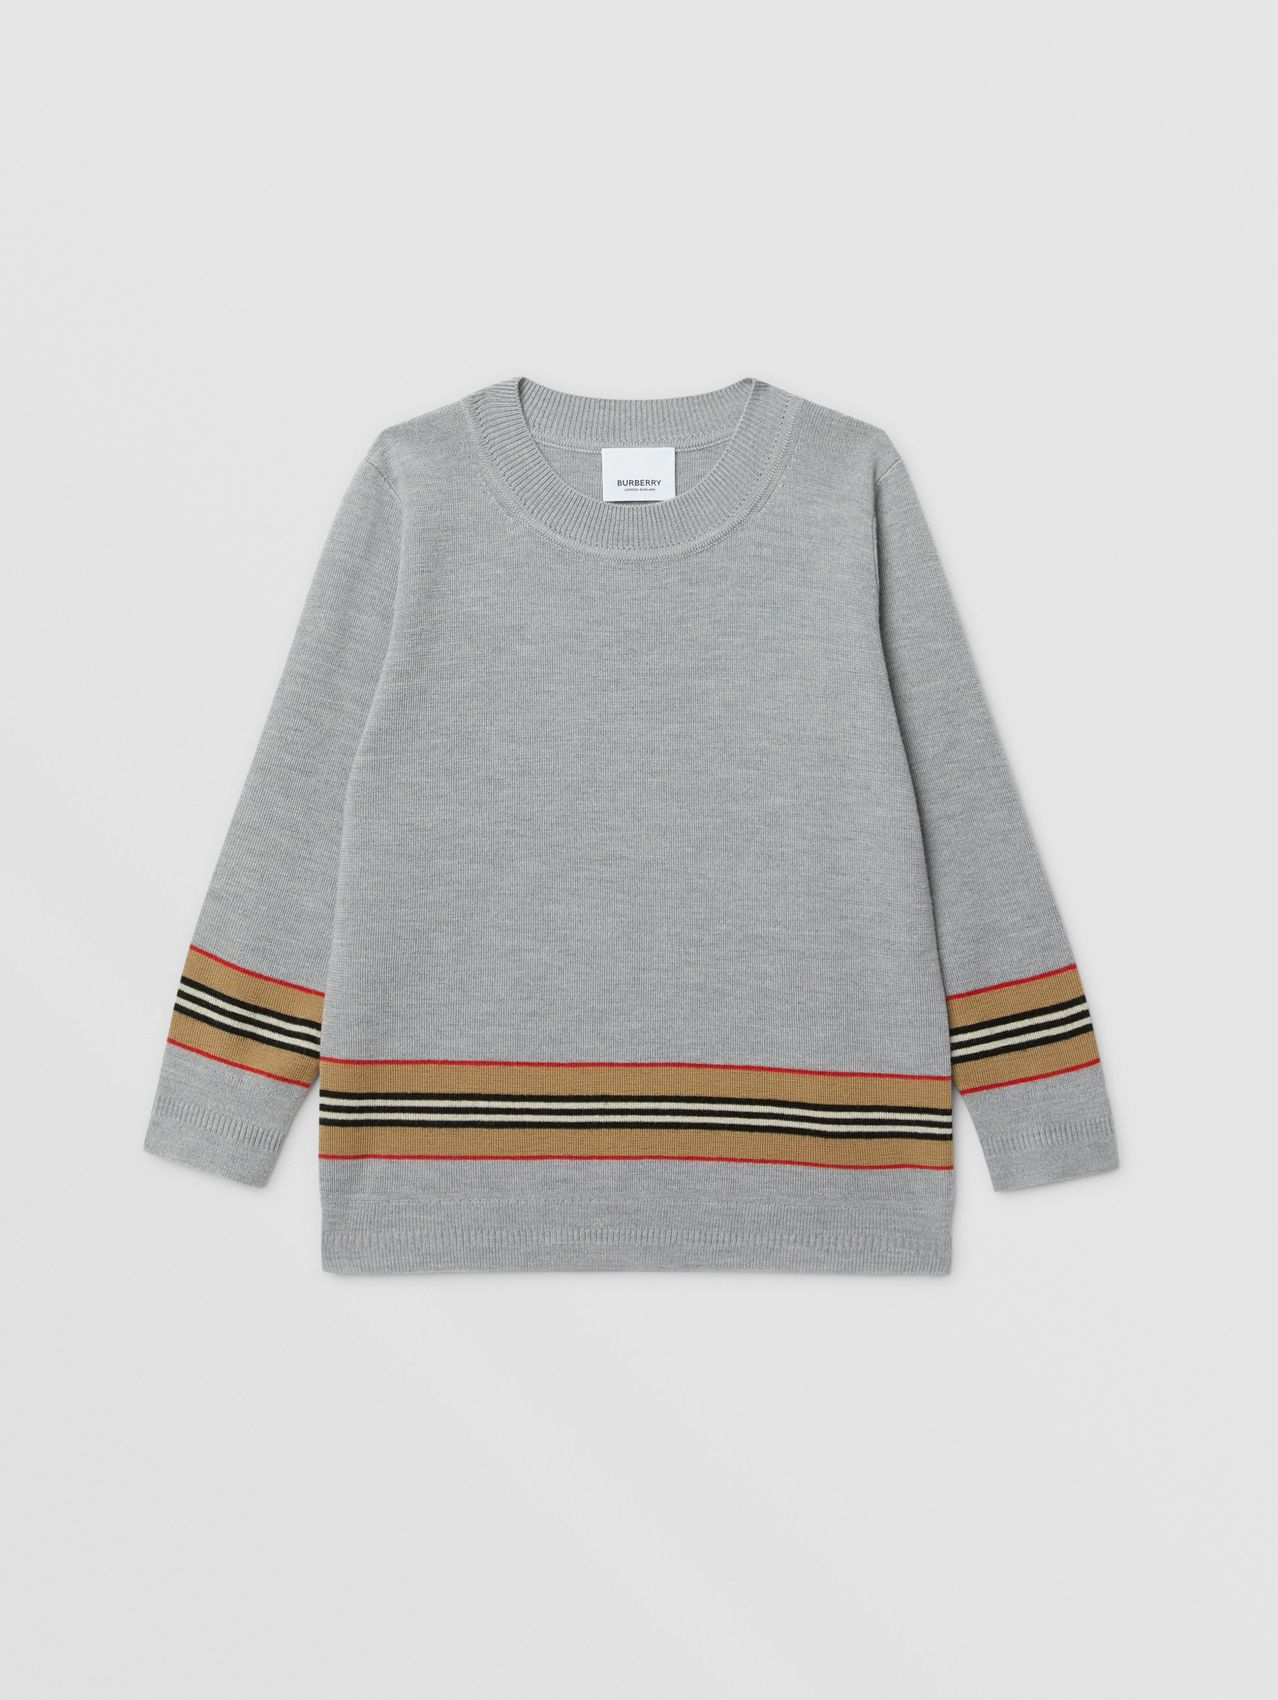 Icon Stripe Panel Merino Wool Sweater in Grey Melange